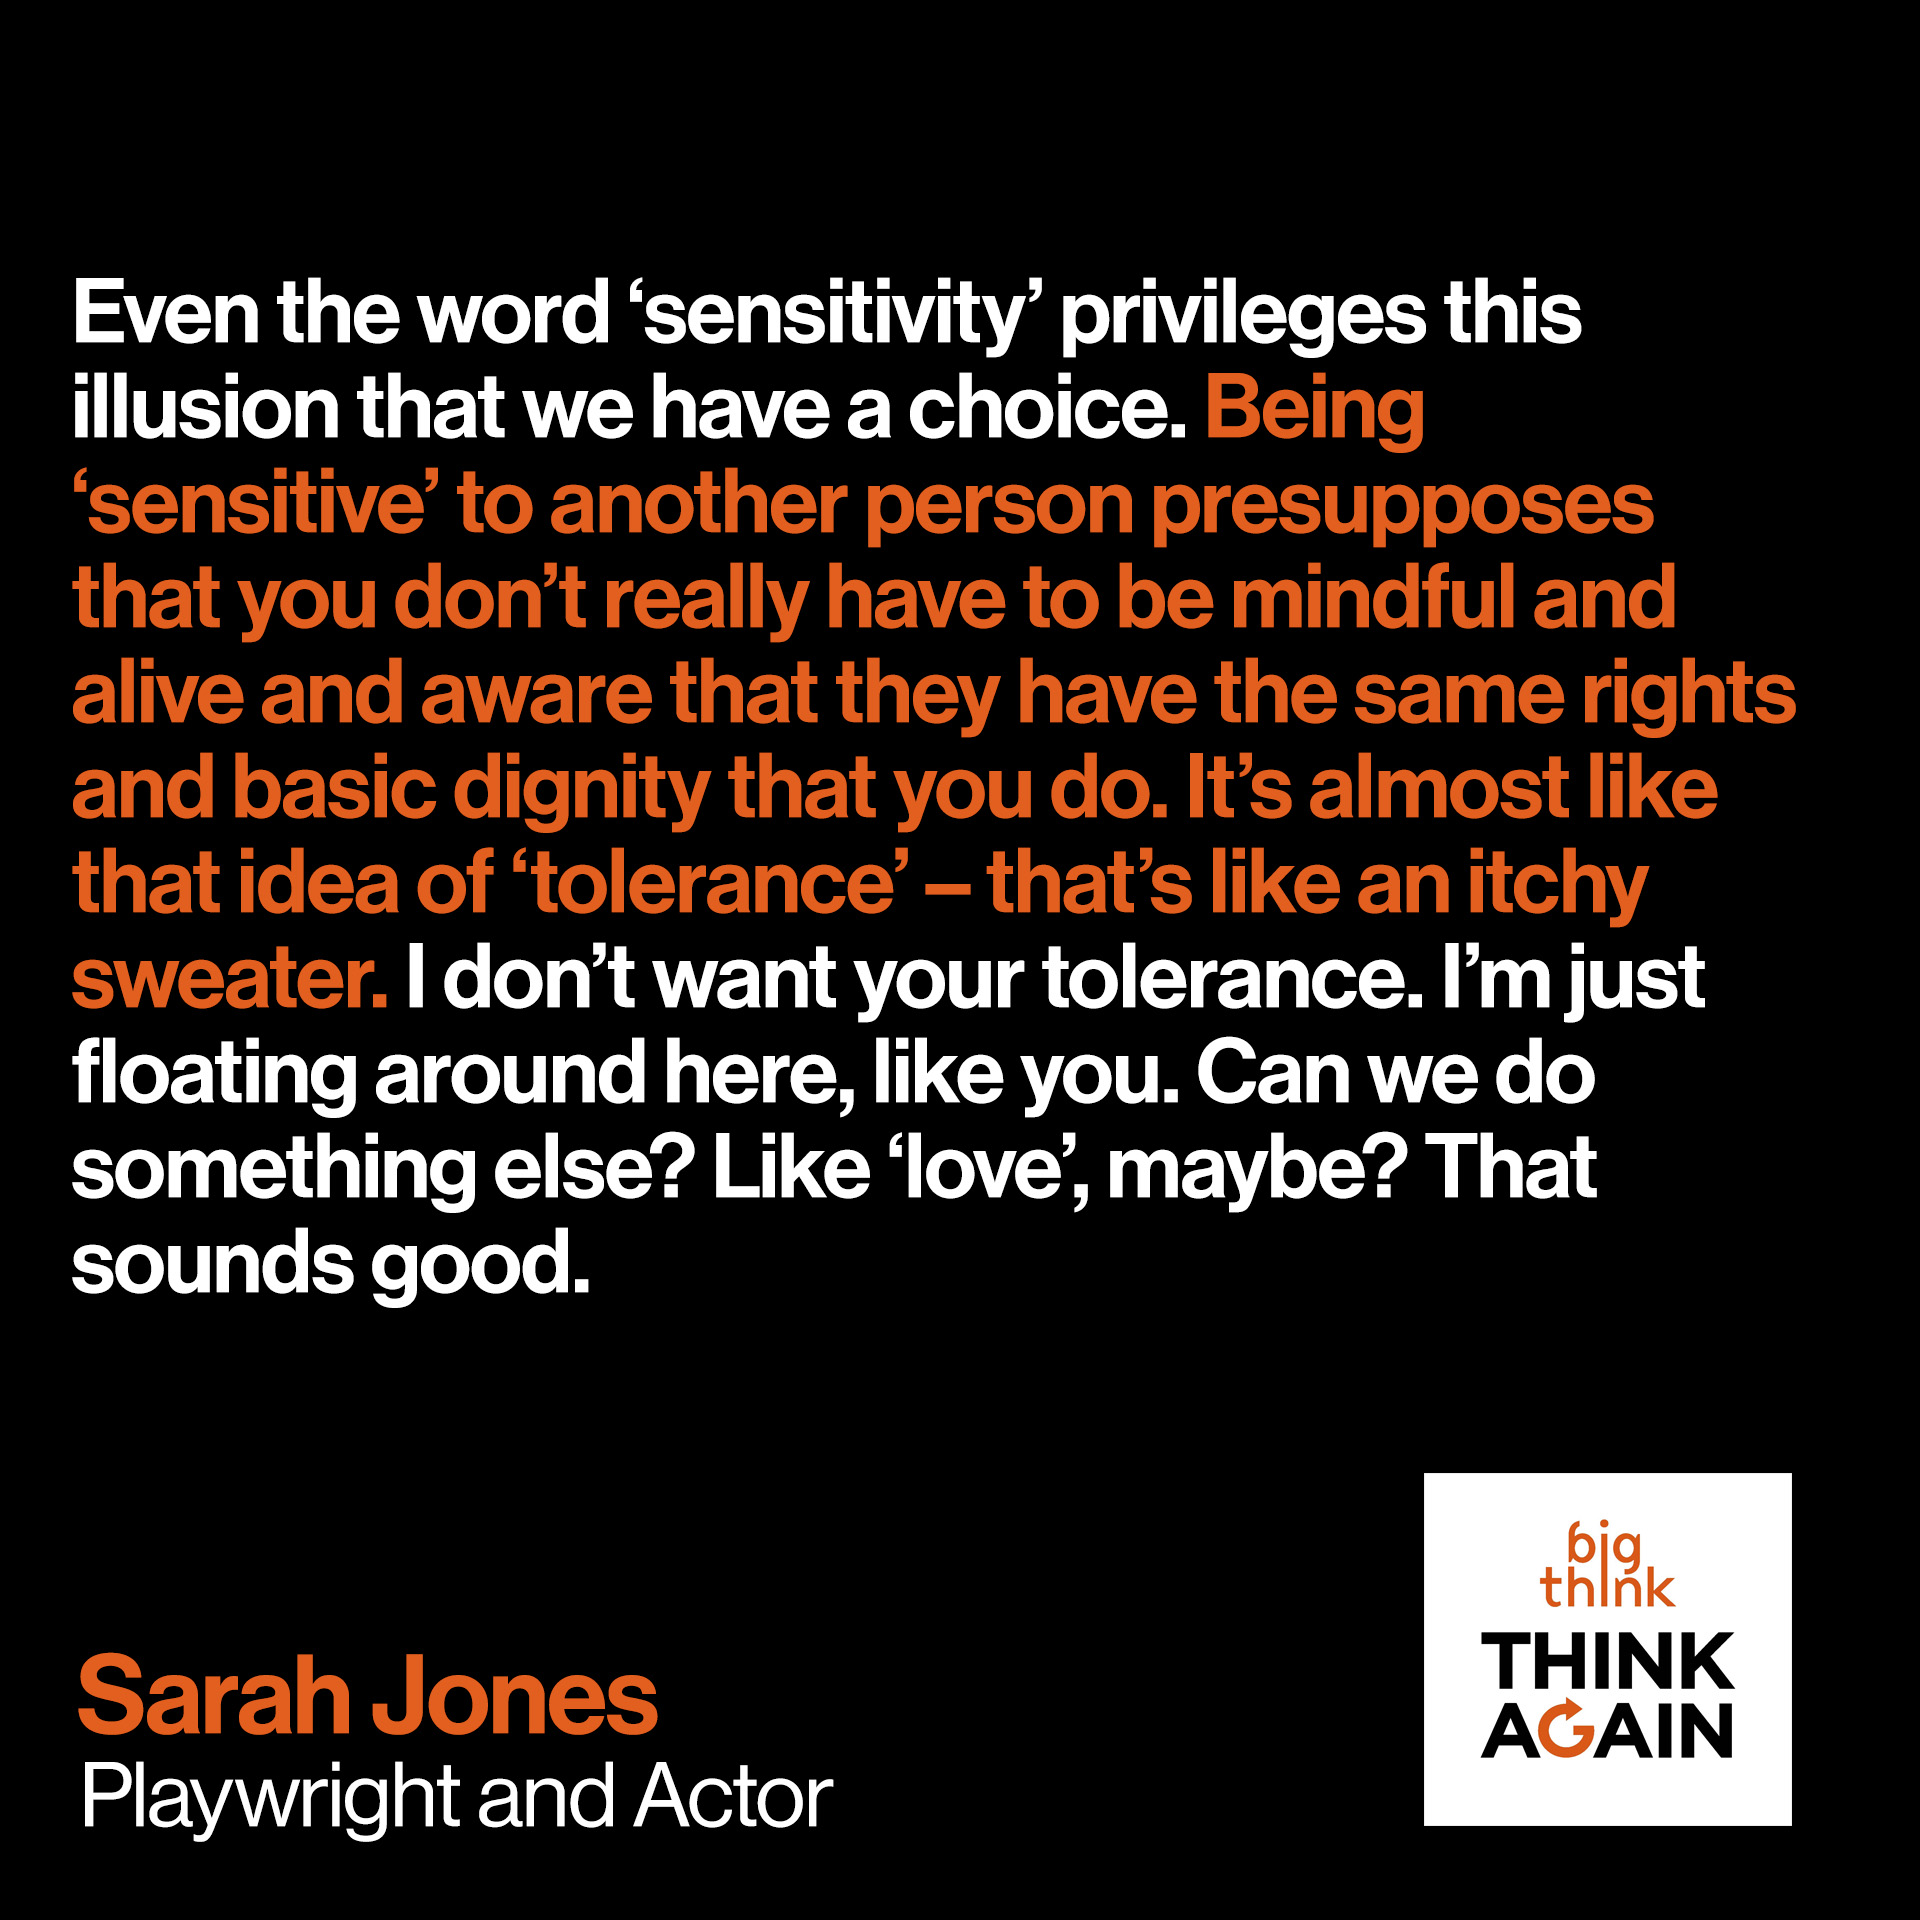 Sarah Jones Quote: Even the word 'sensitivity' privileges this illusion that we have a choice. Being 'sensitive' to another person presupposes that you don't really have to be mindful and alive and aware that they have the same rights and basic dignity that you do. It's almost like that idea of 'tolerance' – that's like an itchy sweater. I don't want your tolerance. I'm just floating around here, like you. Can we do something else? Like 'love', maybe? That sounds good.